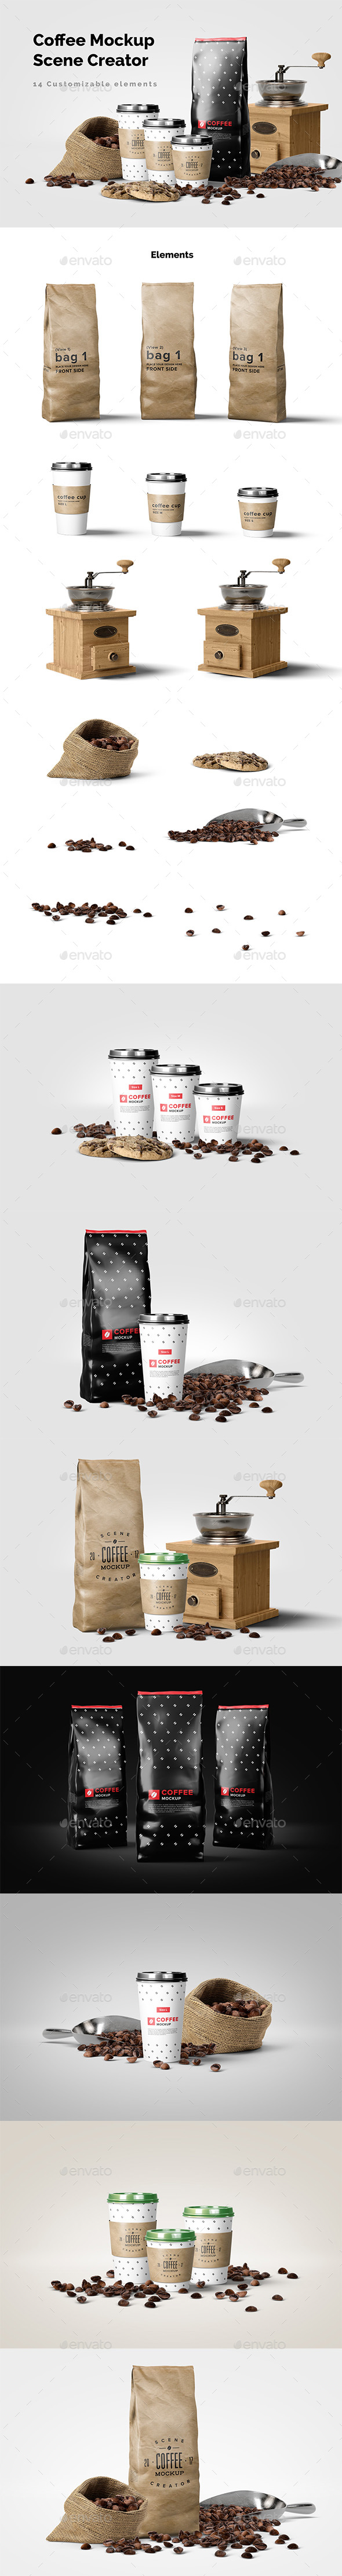 GraphicRiver Coffee Mockup Scene Creator 20855275